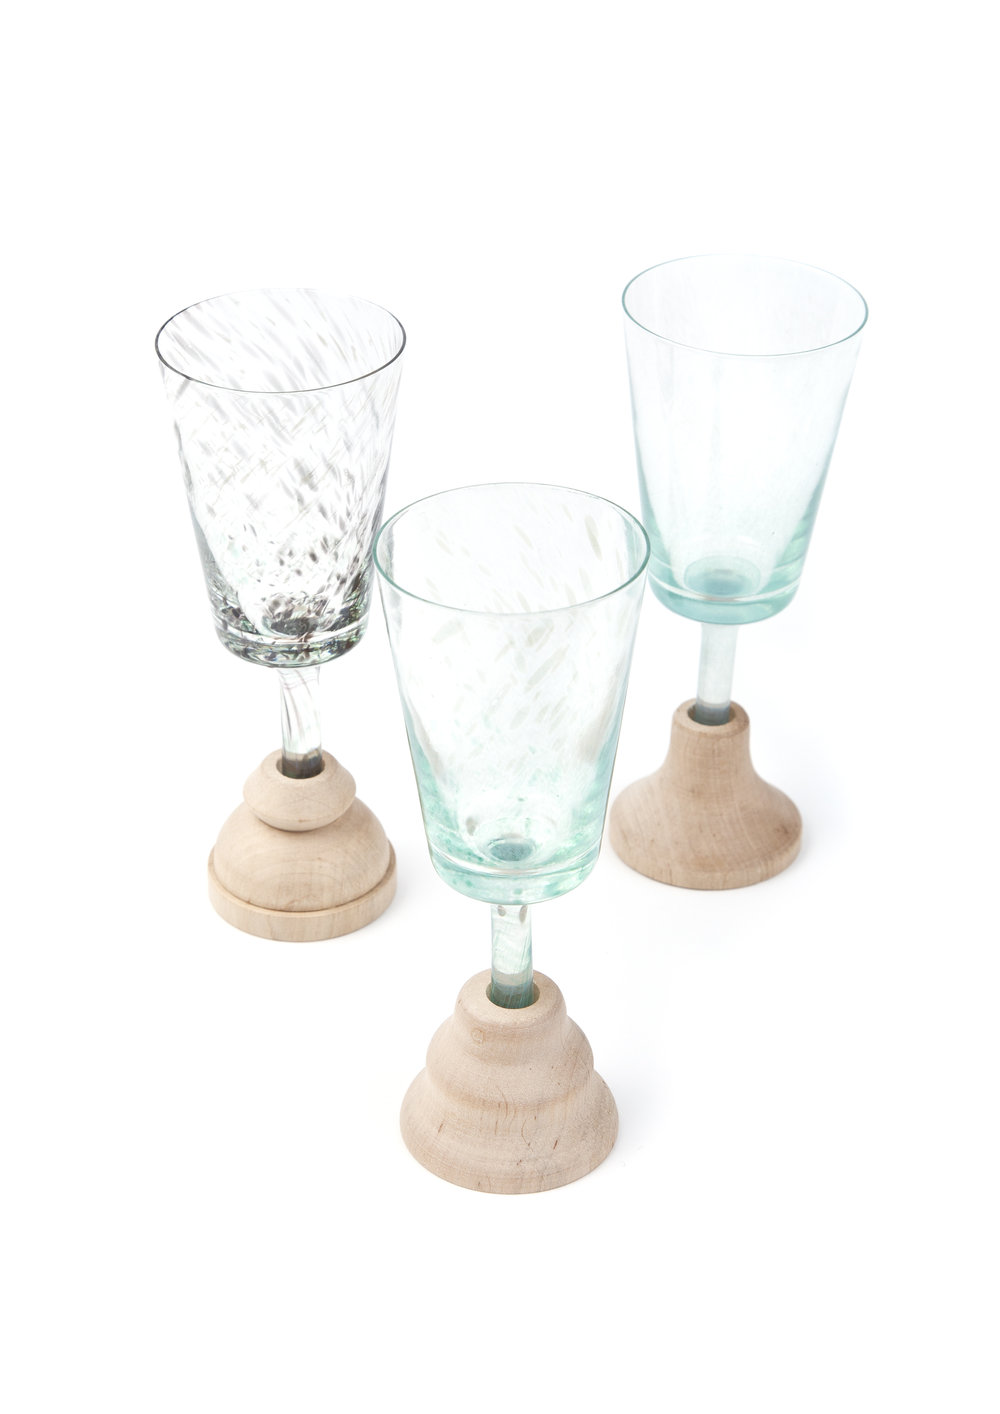 GlAsS - Handmade small glasses inspired by old methods of fixing >>>